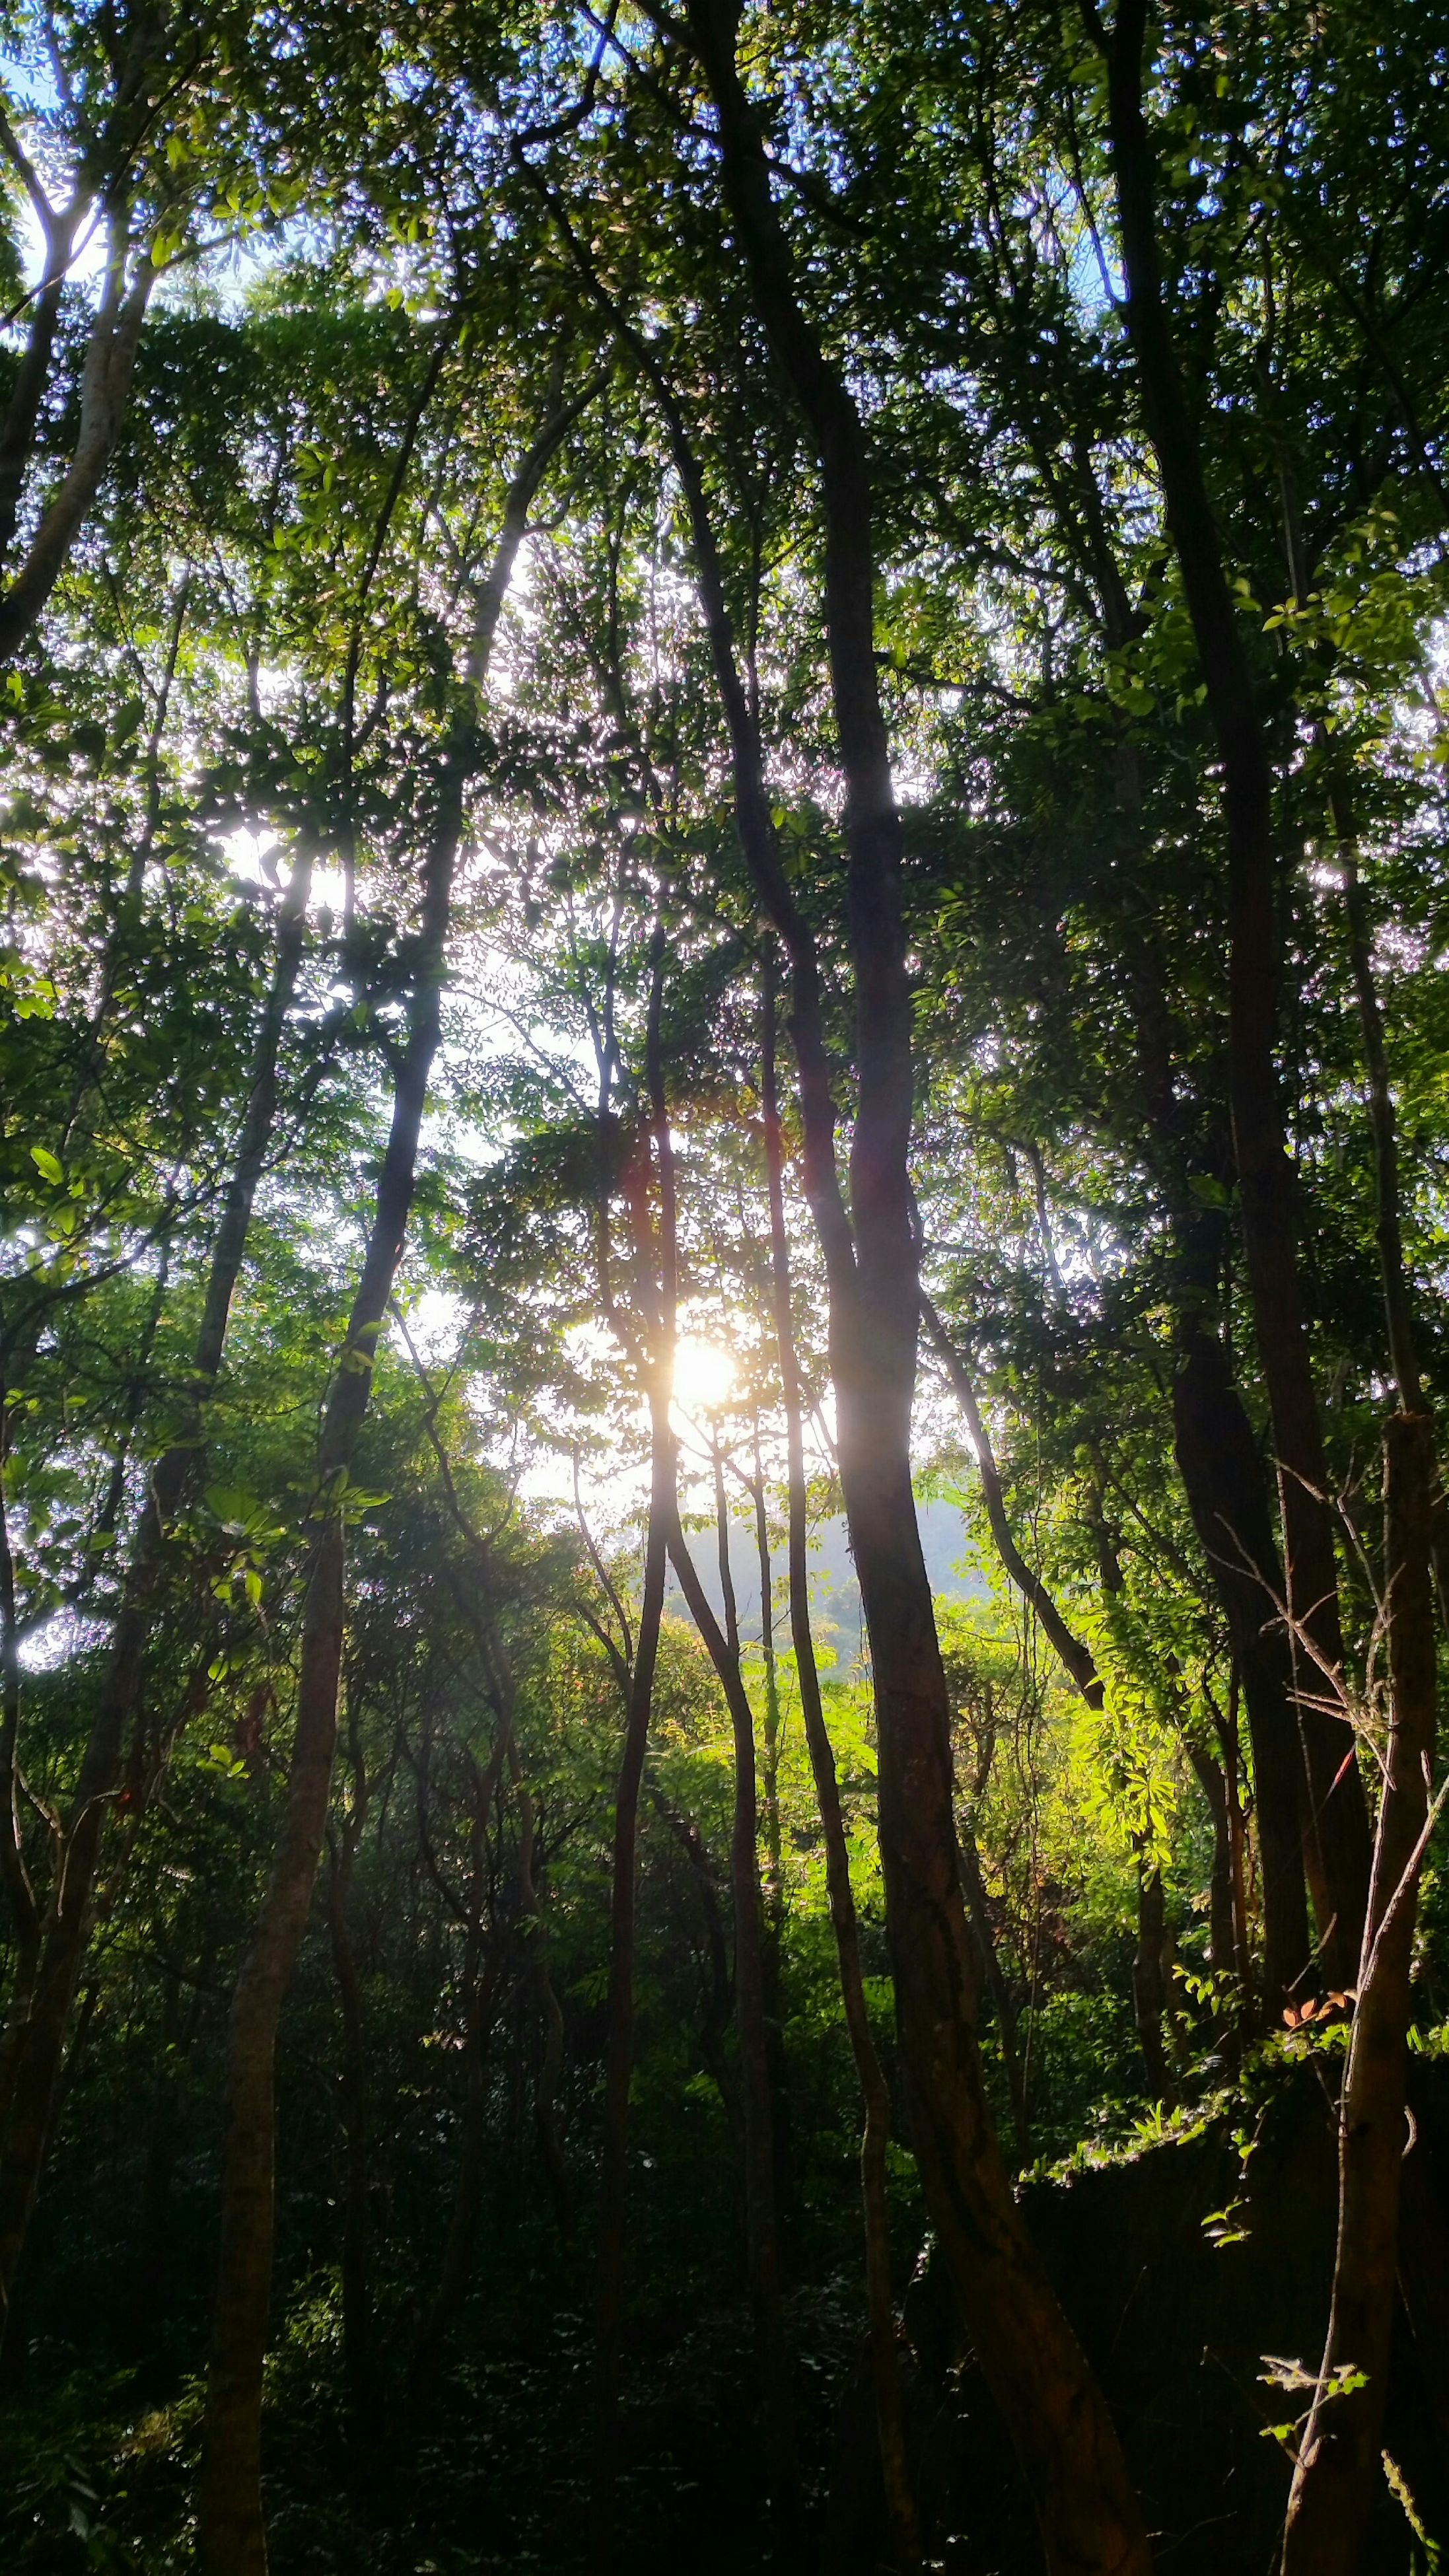 tree, forest, tranquility, growth, tree trunk, low angle view, woodland, nature, sunlight, tranquil scene, sun, beauty in nature, branch, sunbeam, scenics, lens flare, green color, non-urban scene, back lit, no people